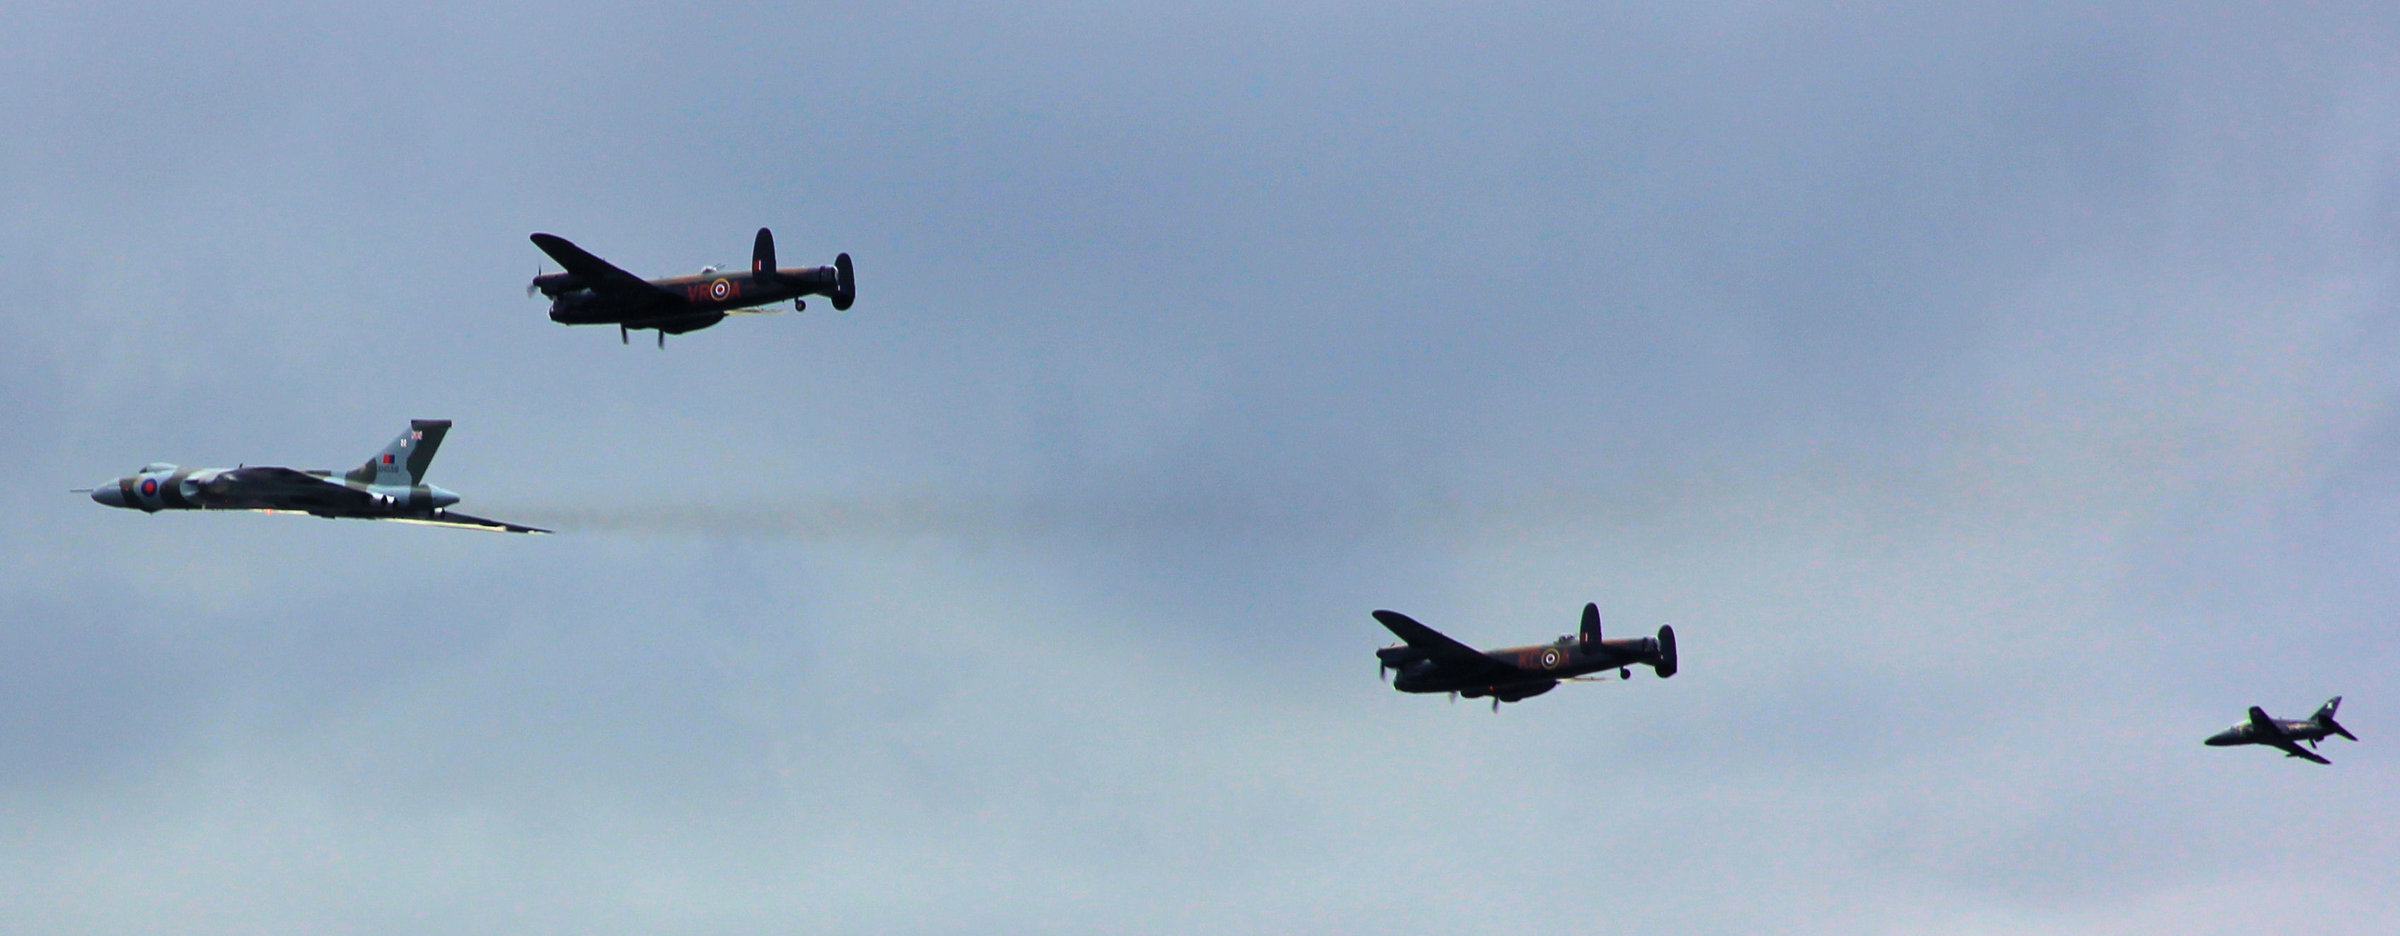 Two Lancs and a Vulcan flying.JPG